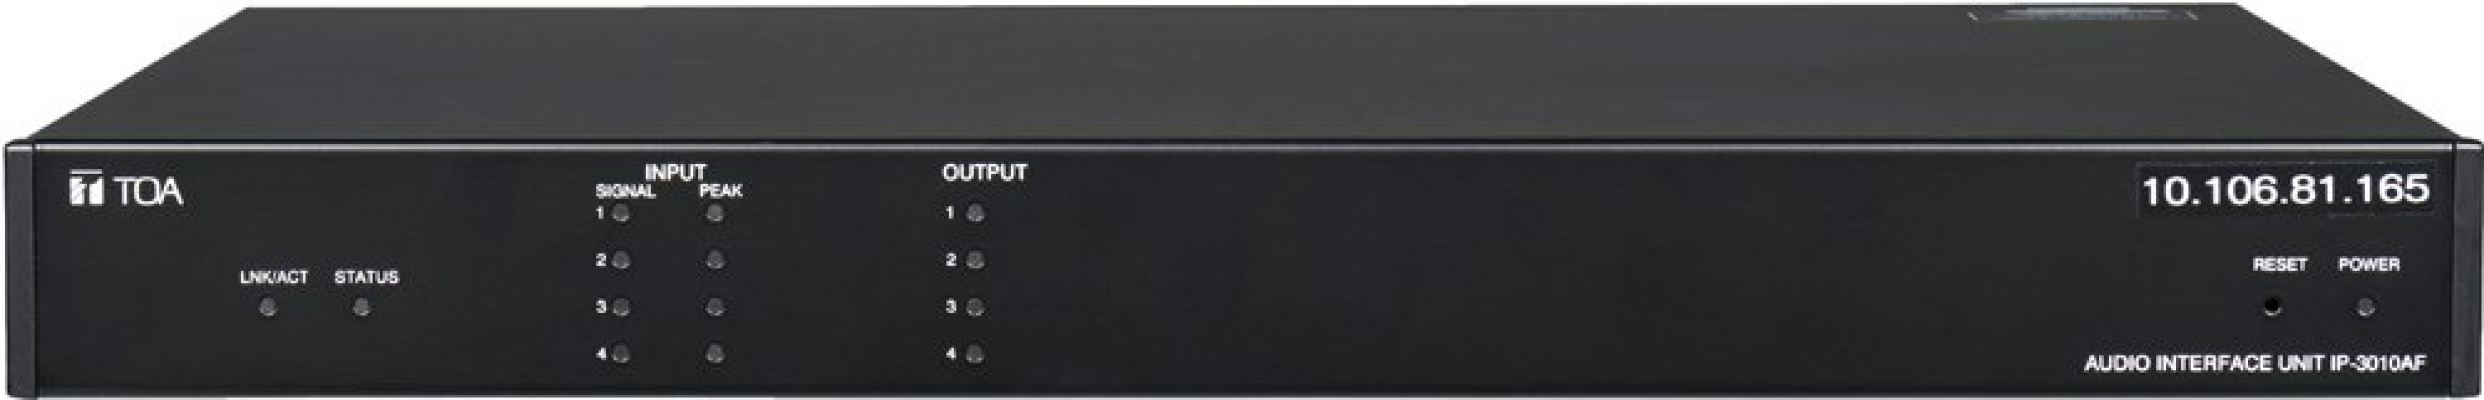 IP-3010AF. TOA Audio Interface Unit. #AIASIA Connect